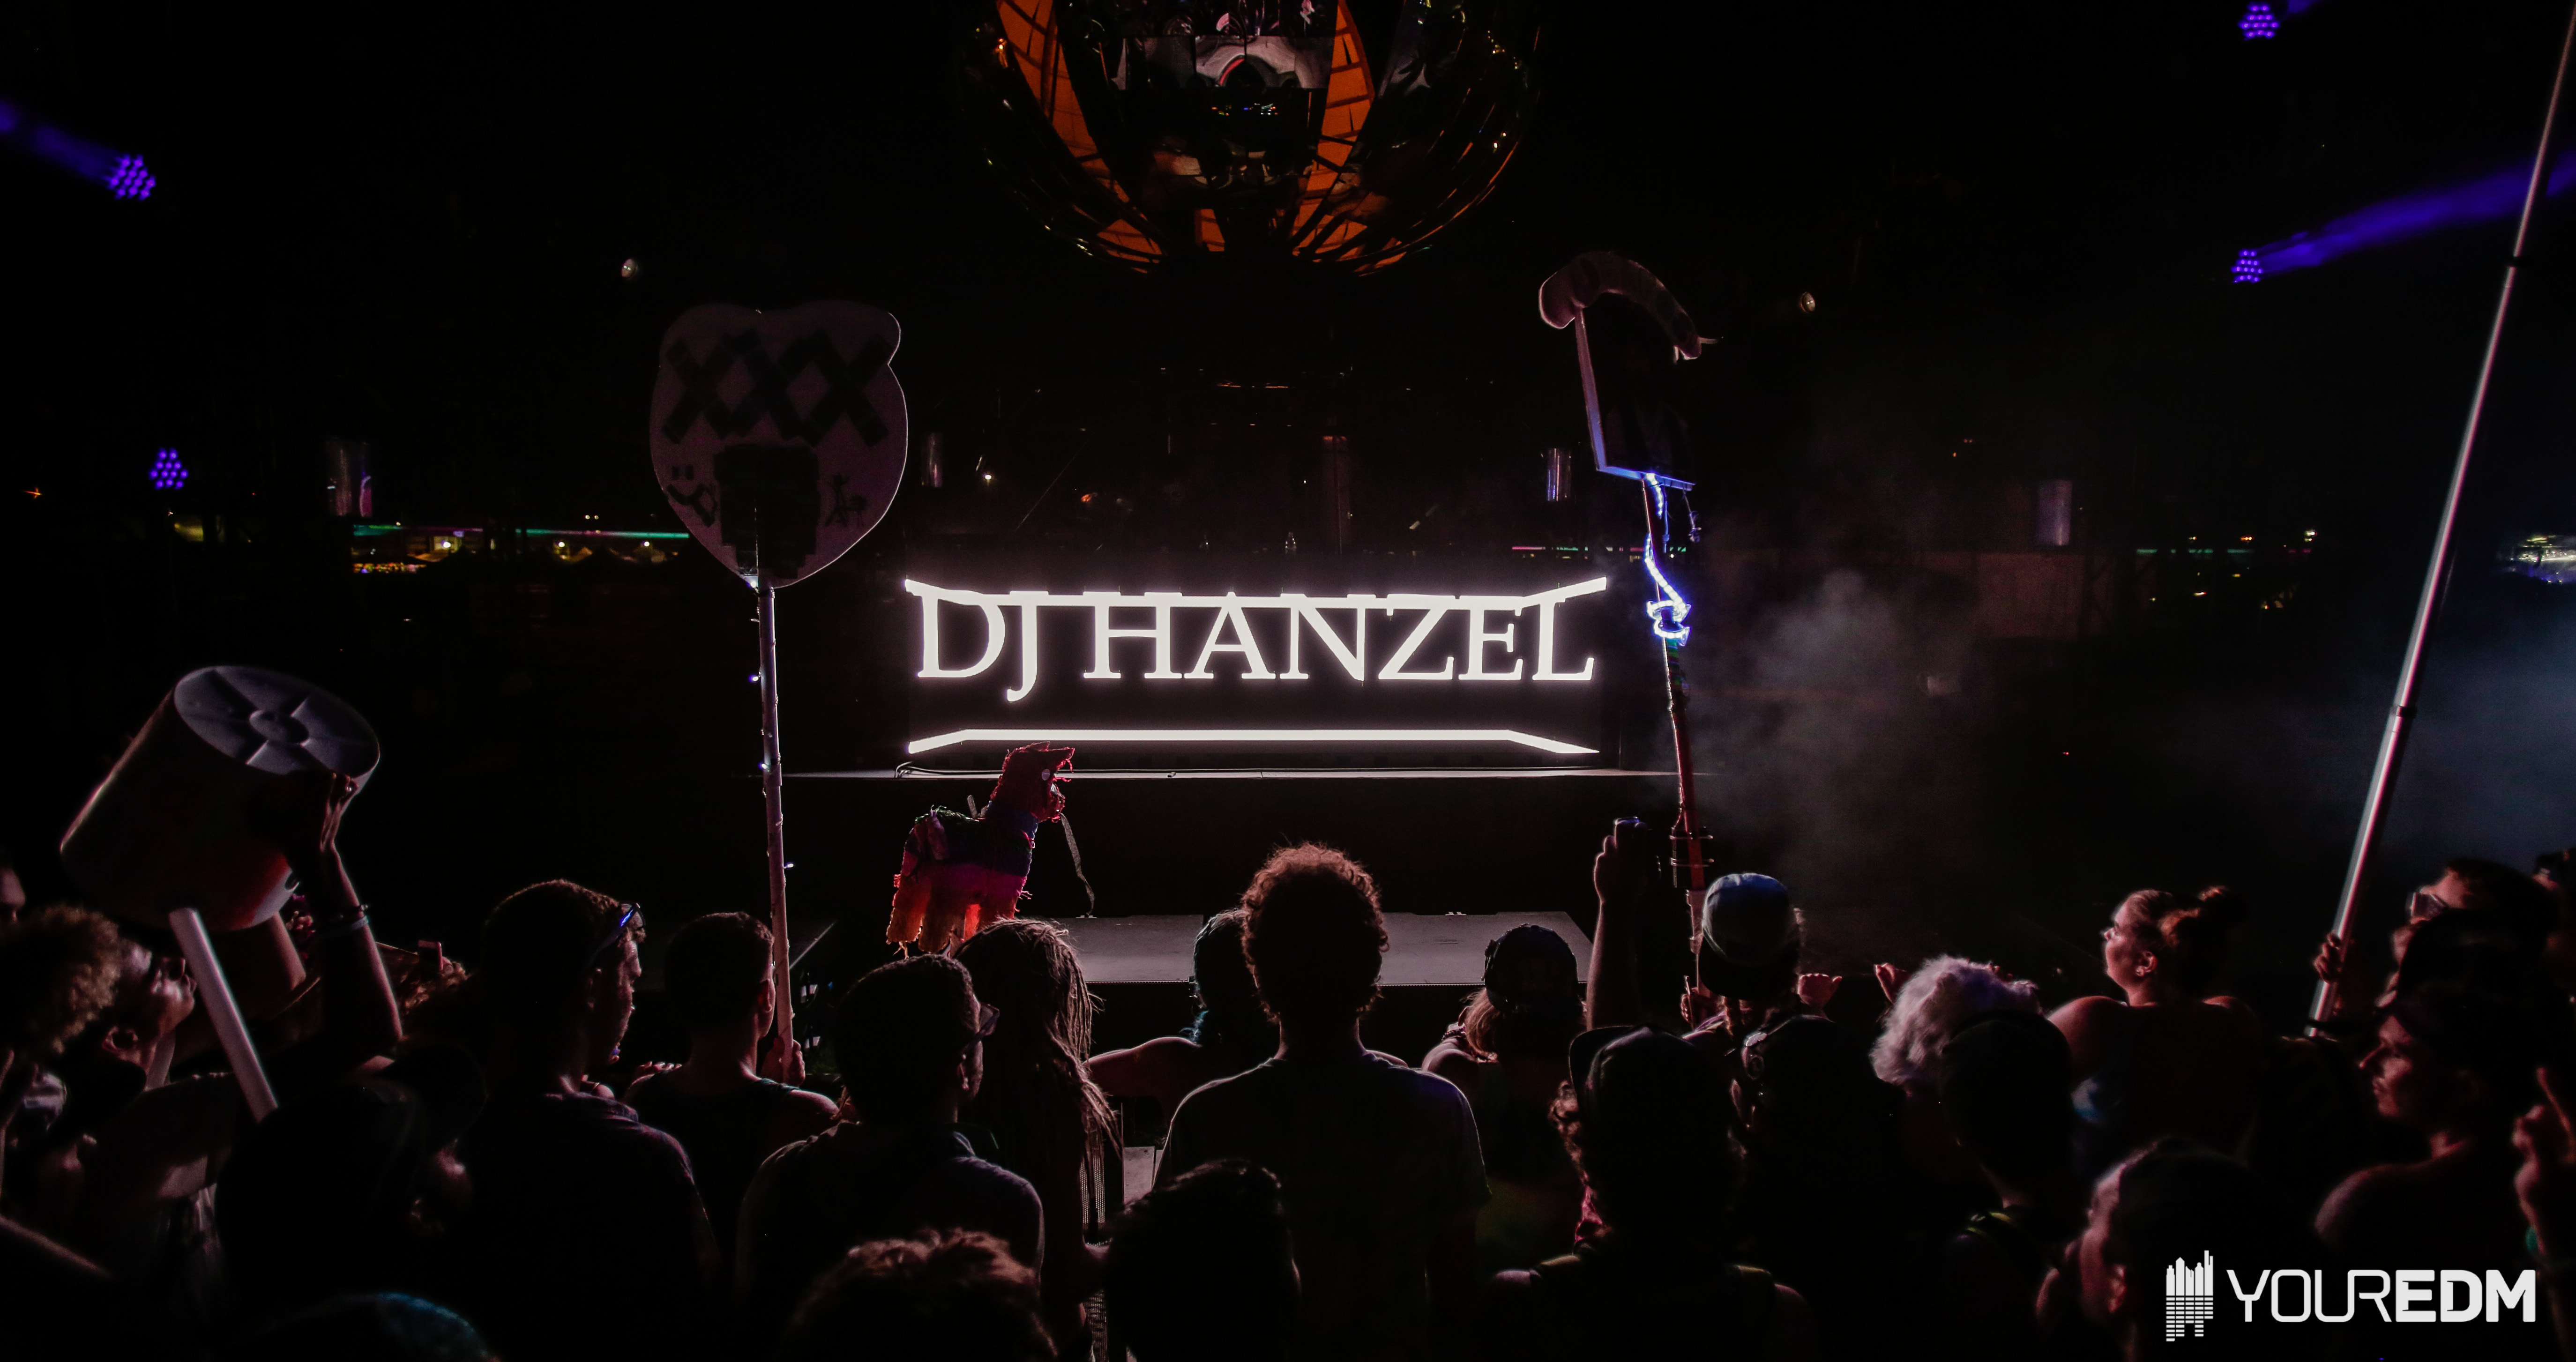 DJ Hanzel Imagine